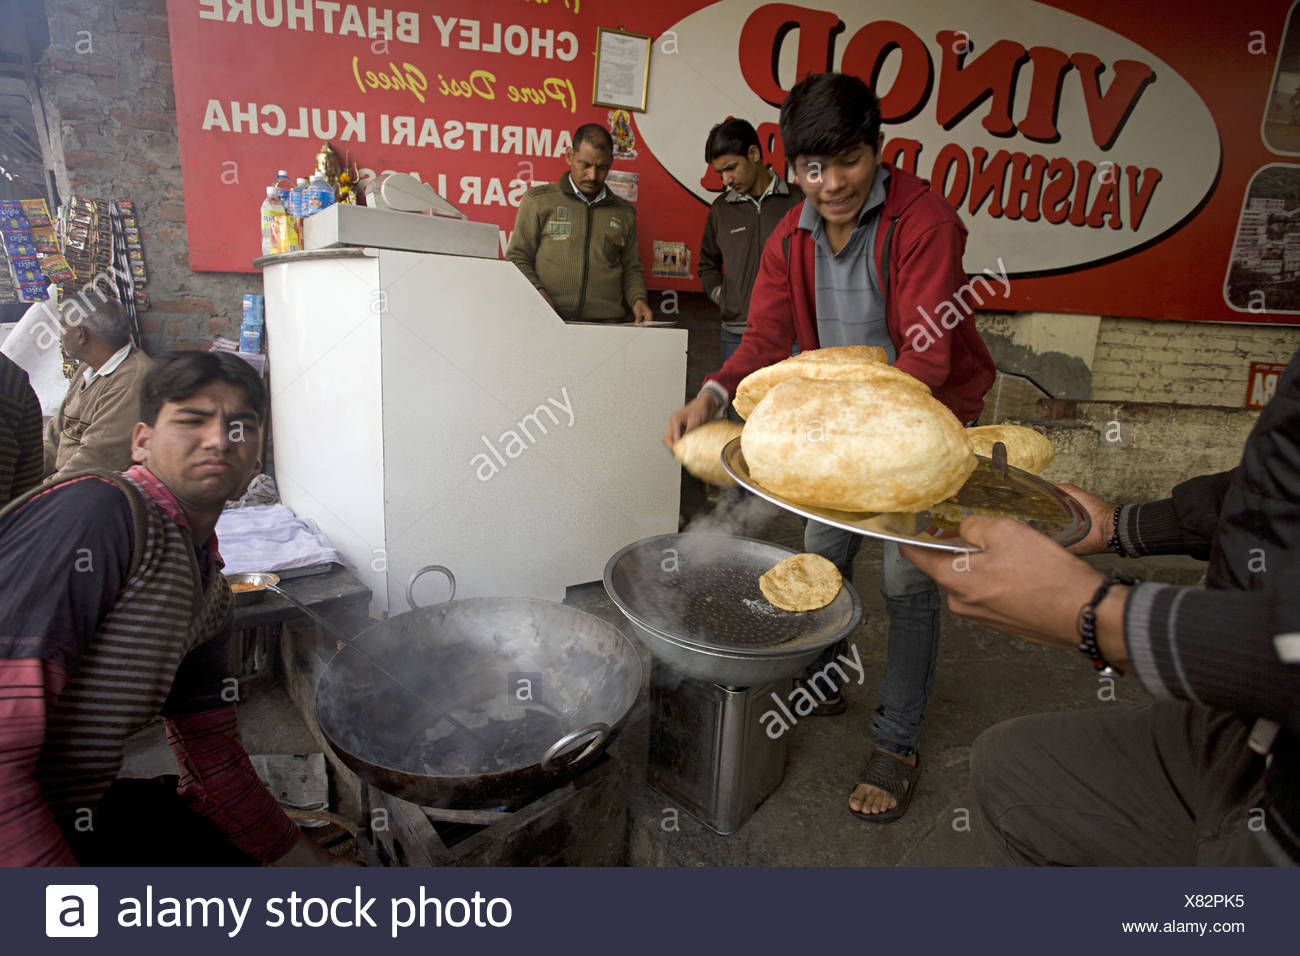 Chole bhature vendor. Chole are spicy chick peas and bhatoora is fried bread (made of maida flour), India - Stock Image